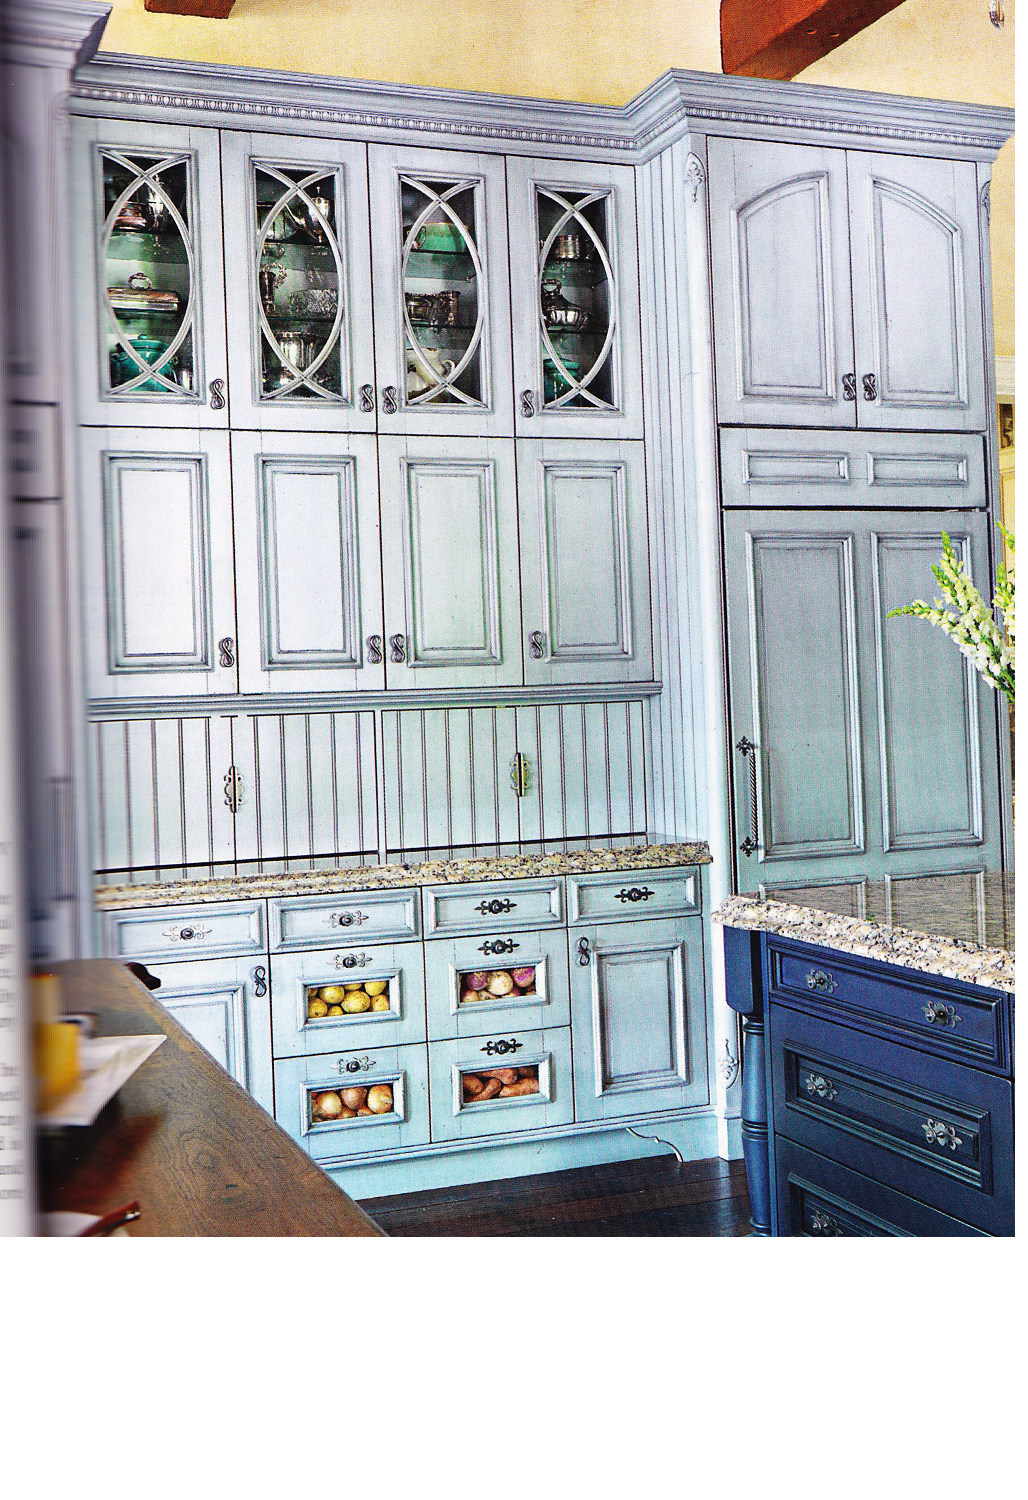 Example of cabinets: Like the overall layout and the ...